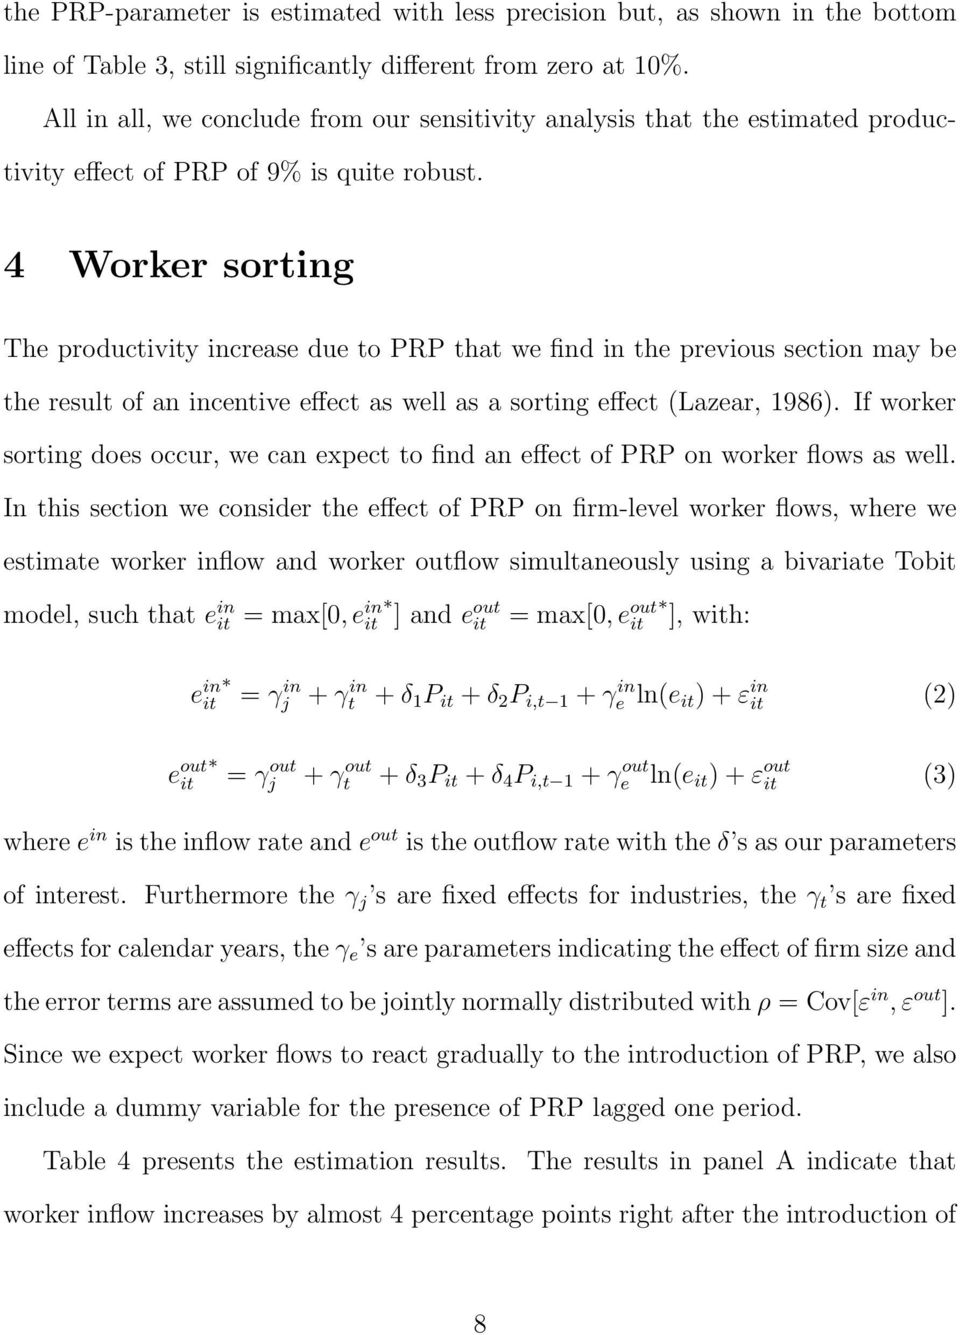 4 Worker sorting The productivity increase due to PRP that we find in the previous section may be the result of an incentive effect as well as a sorting effect (Lazear, 1986).